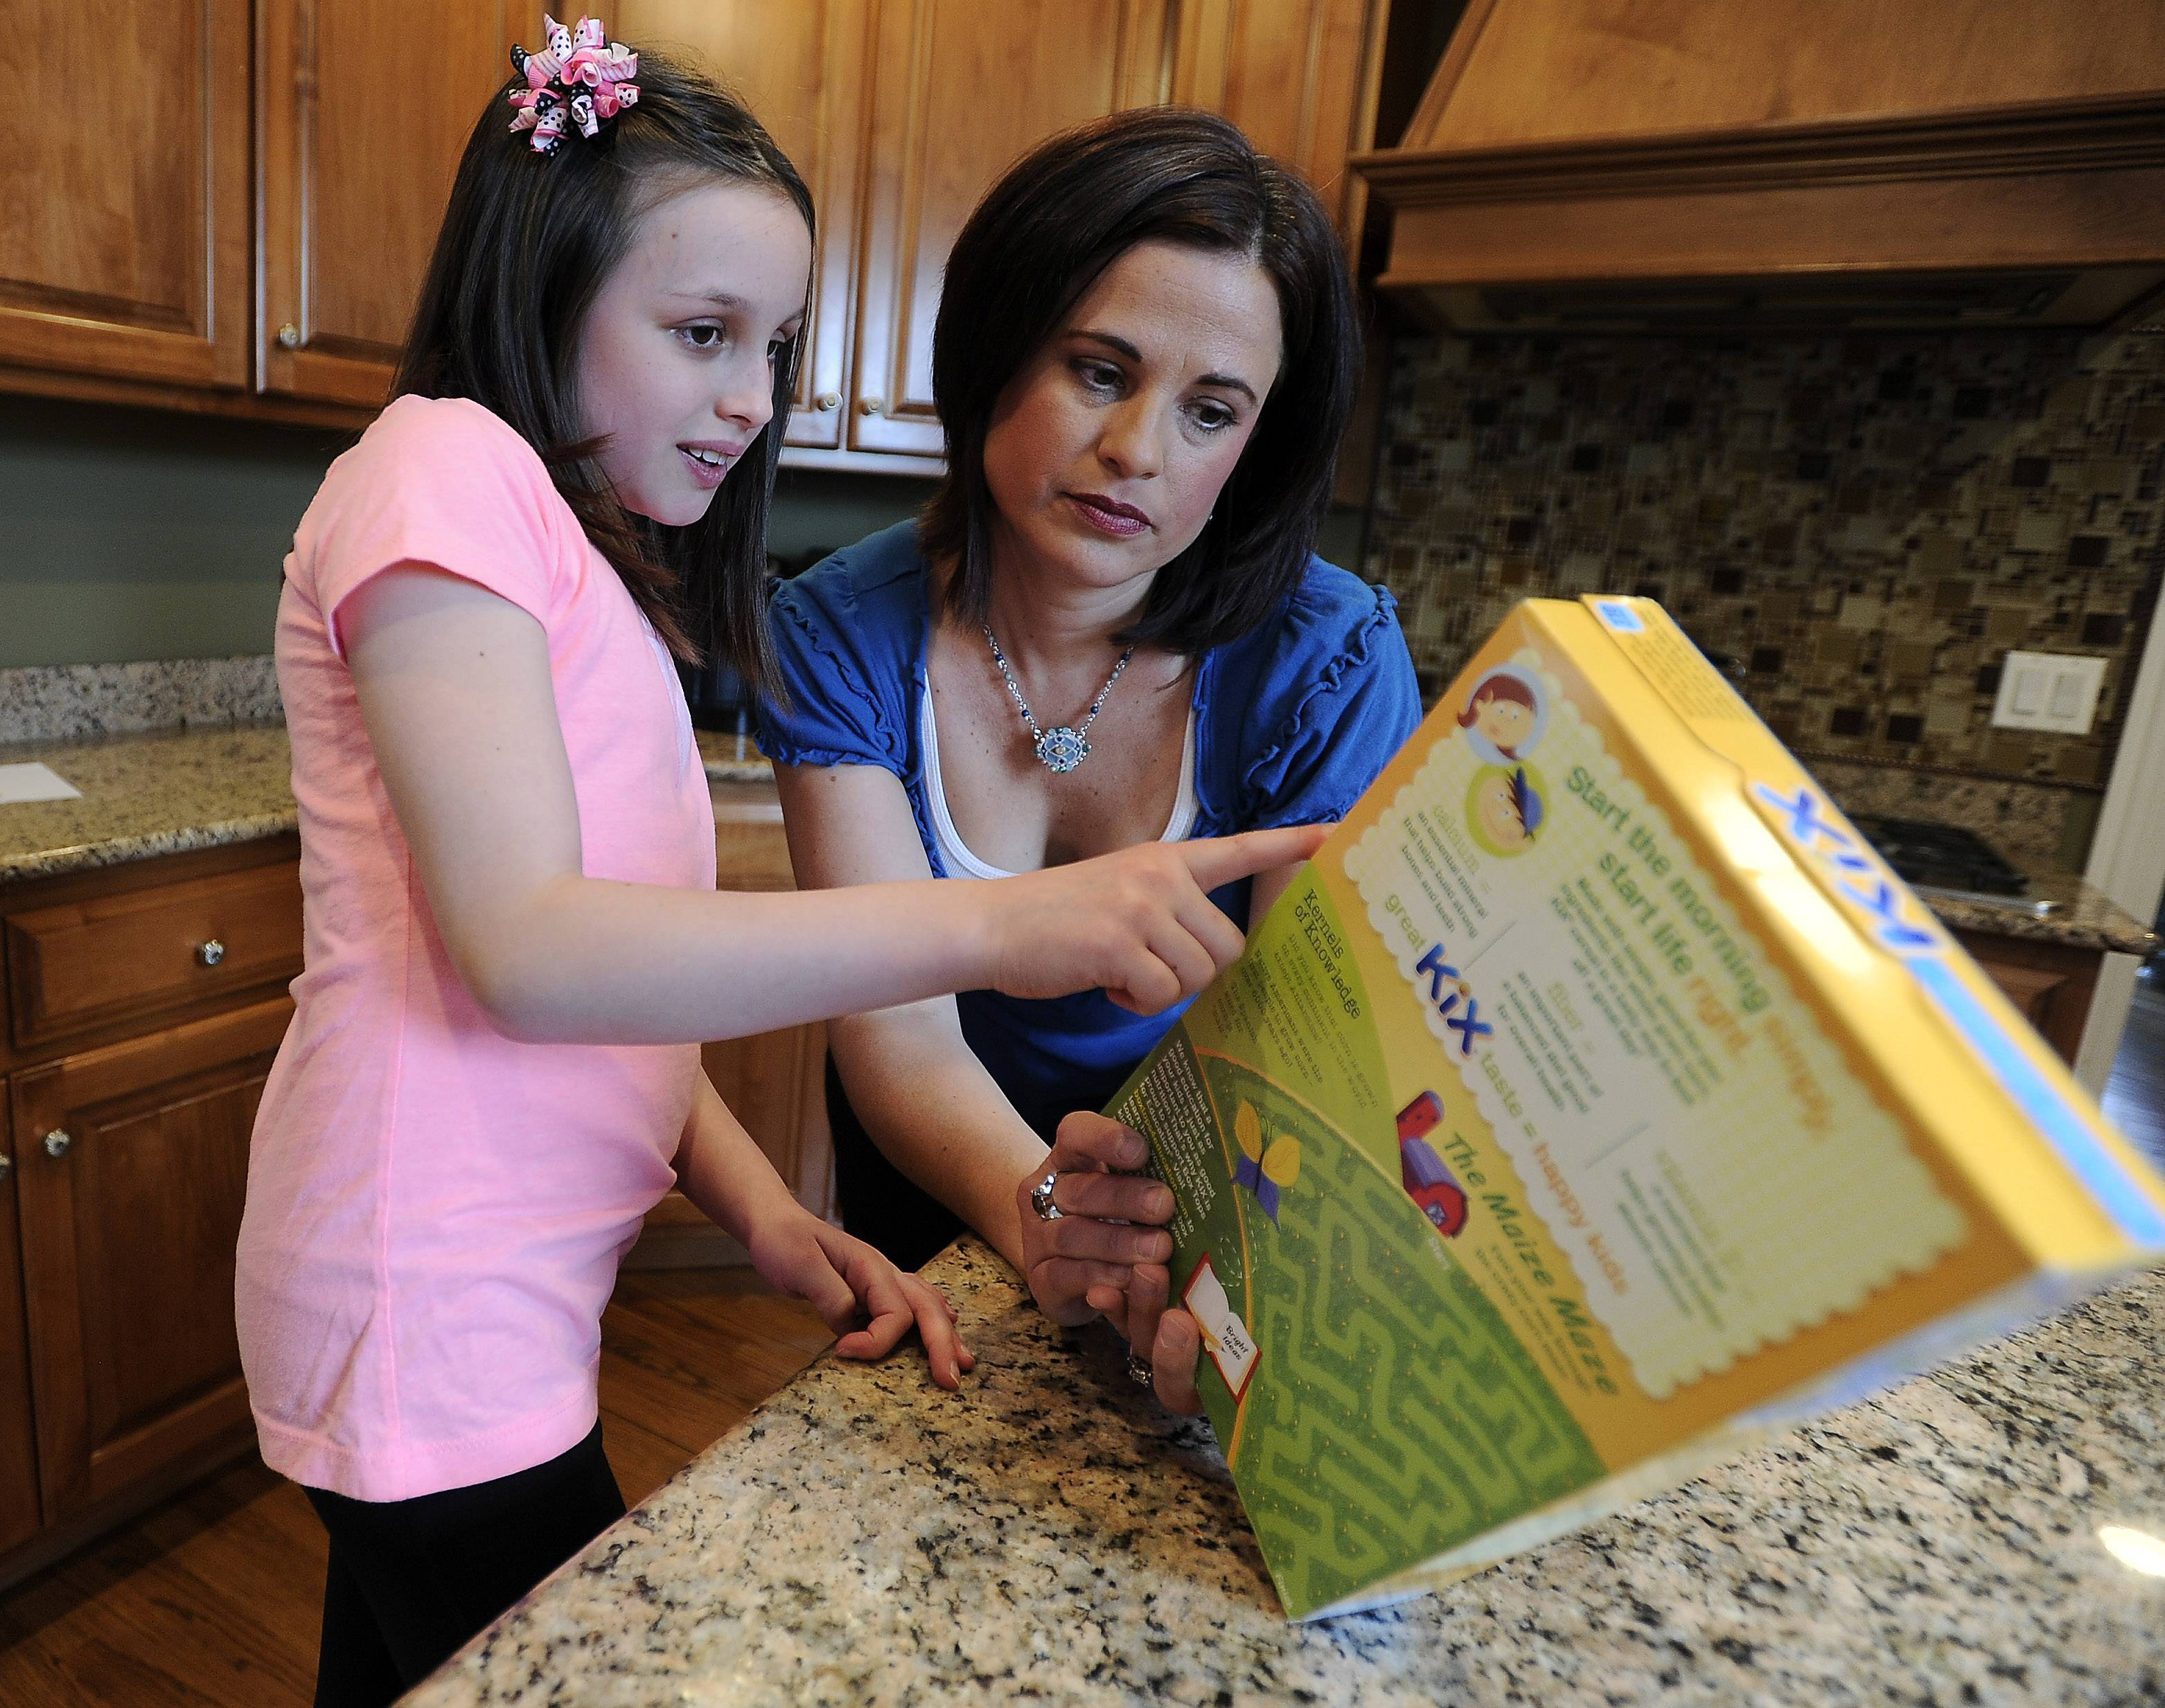 Lucca Teuscher, 8, and her mom Melissa check product ingredients before she eats anything to help Lucca avoid exposure to peanuts because of her life-threating allergy.